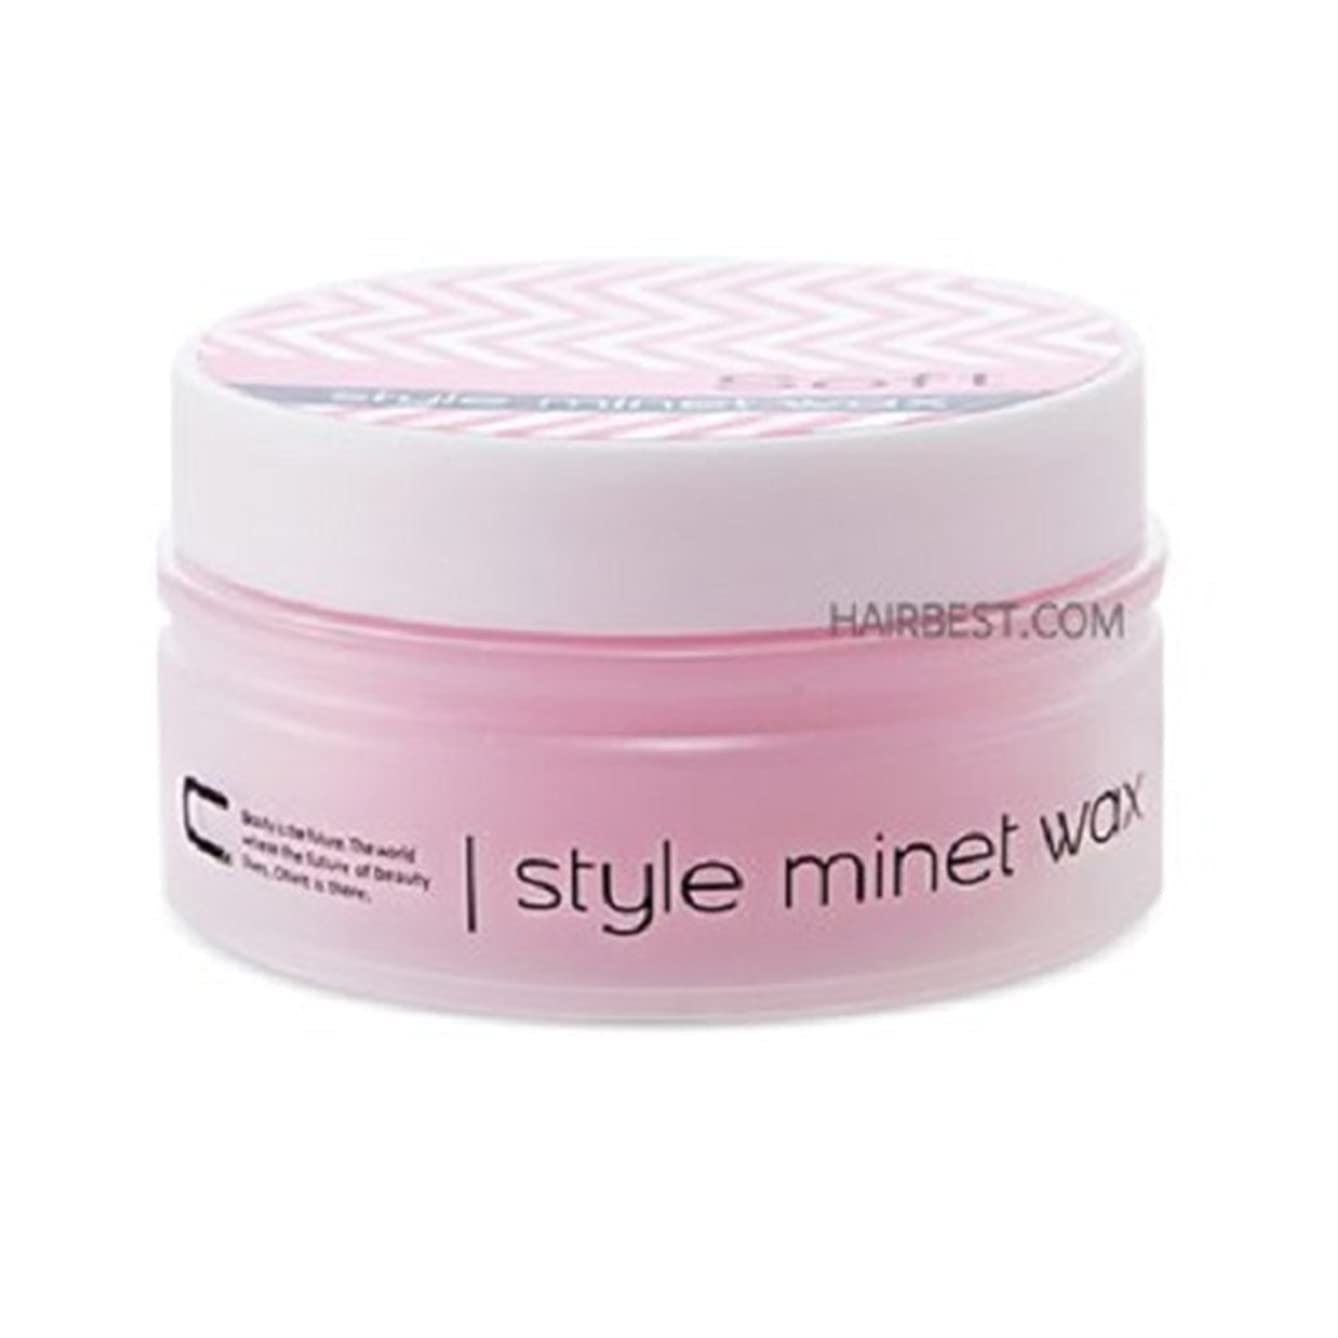 Avenue Chiett Style Minet Hair Wax 100ml 3.3 oz Soft Serum Type Creamy Texture Mositurizing for Men Styling